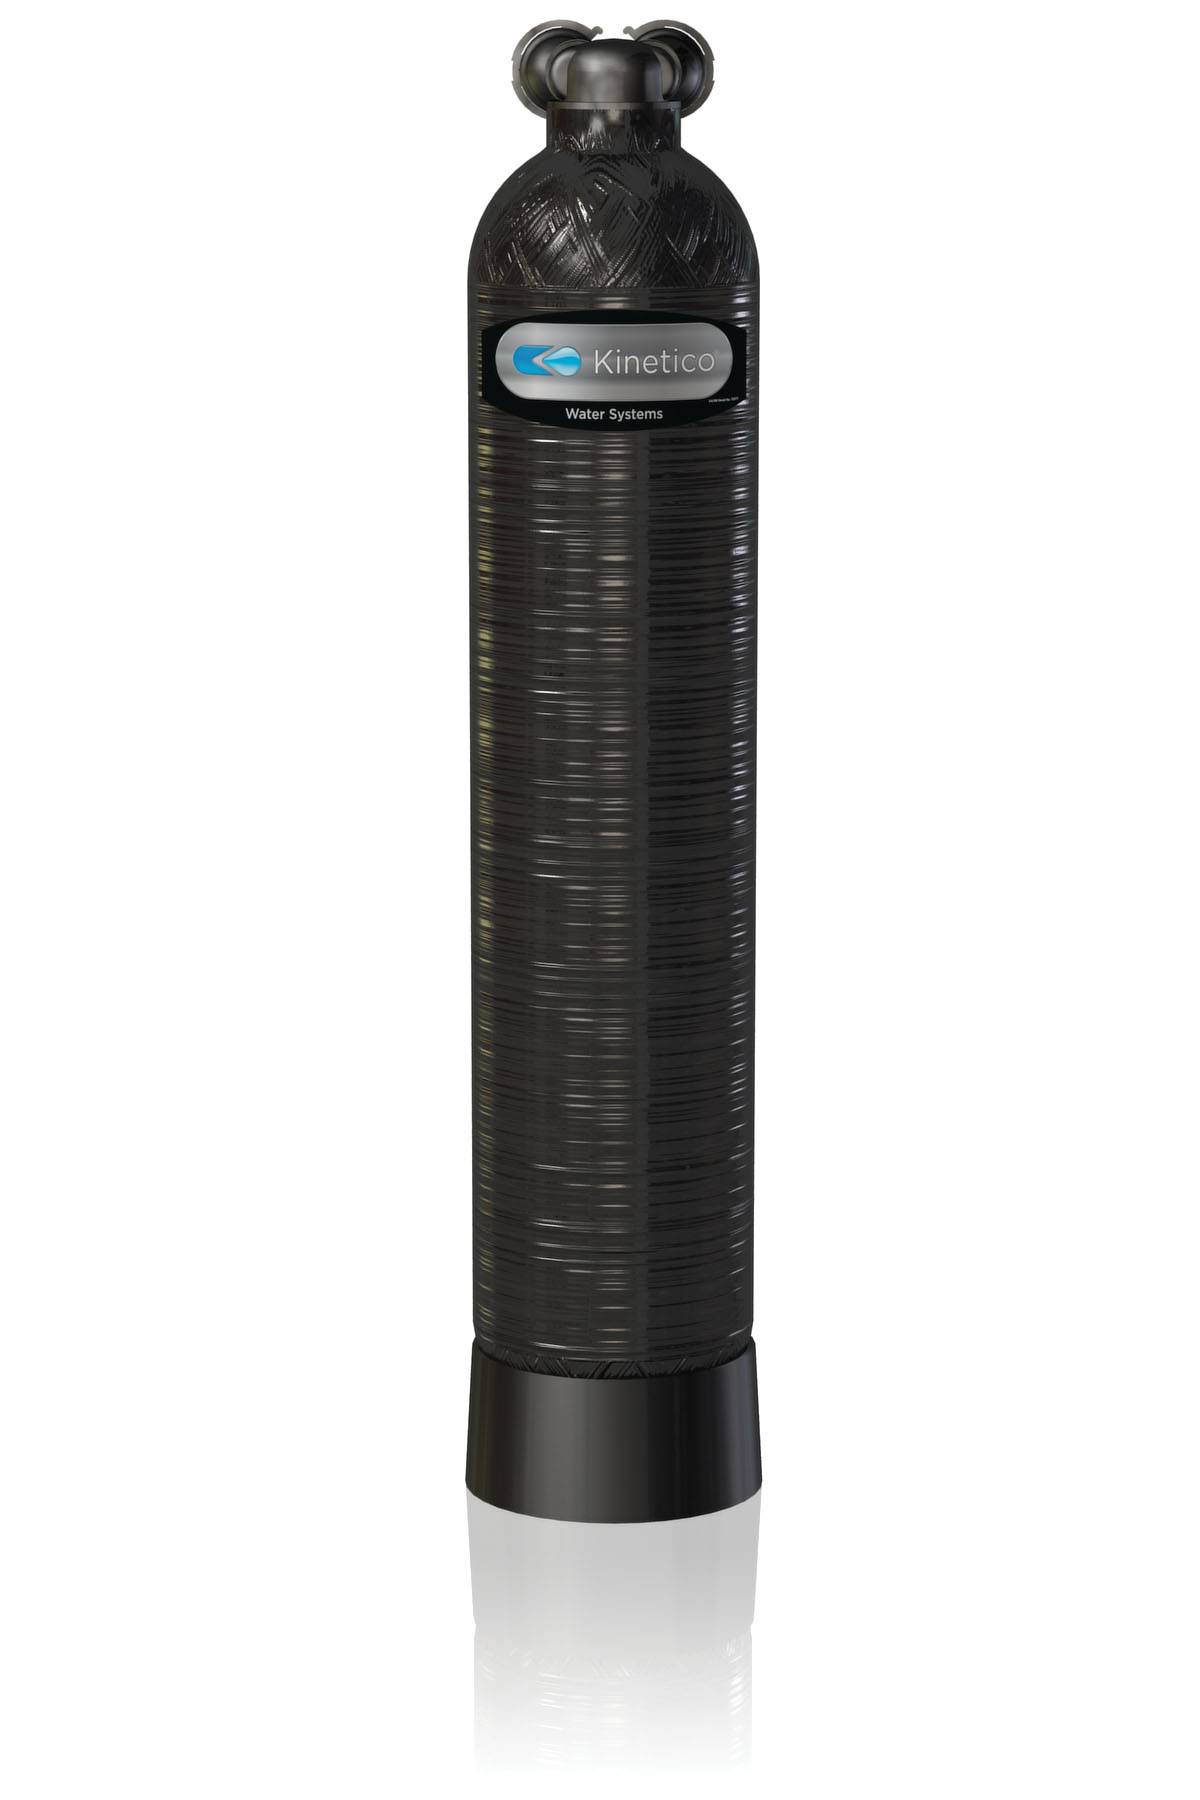 Kinetico Dechlorinator Water Filter